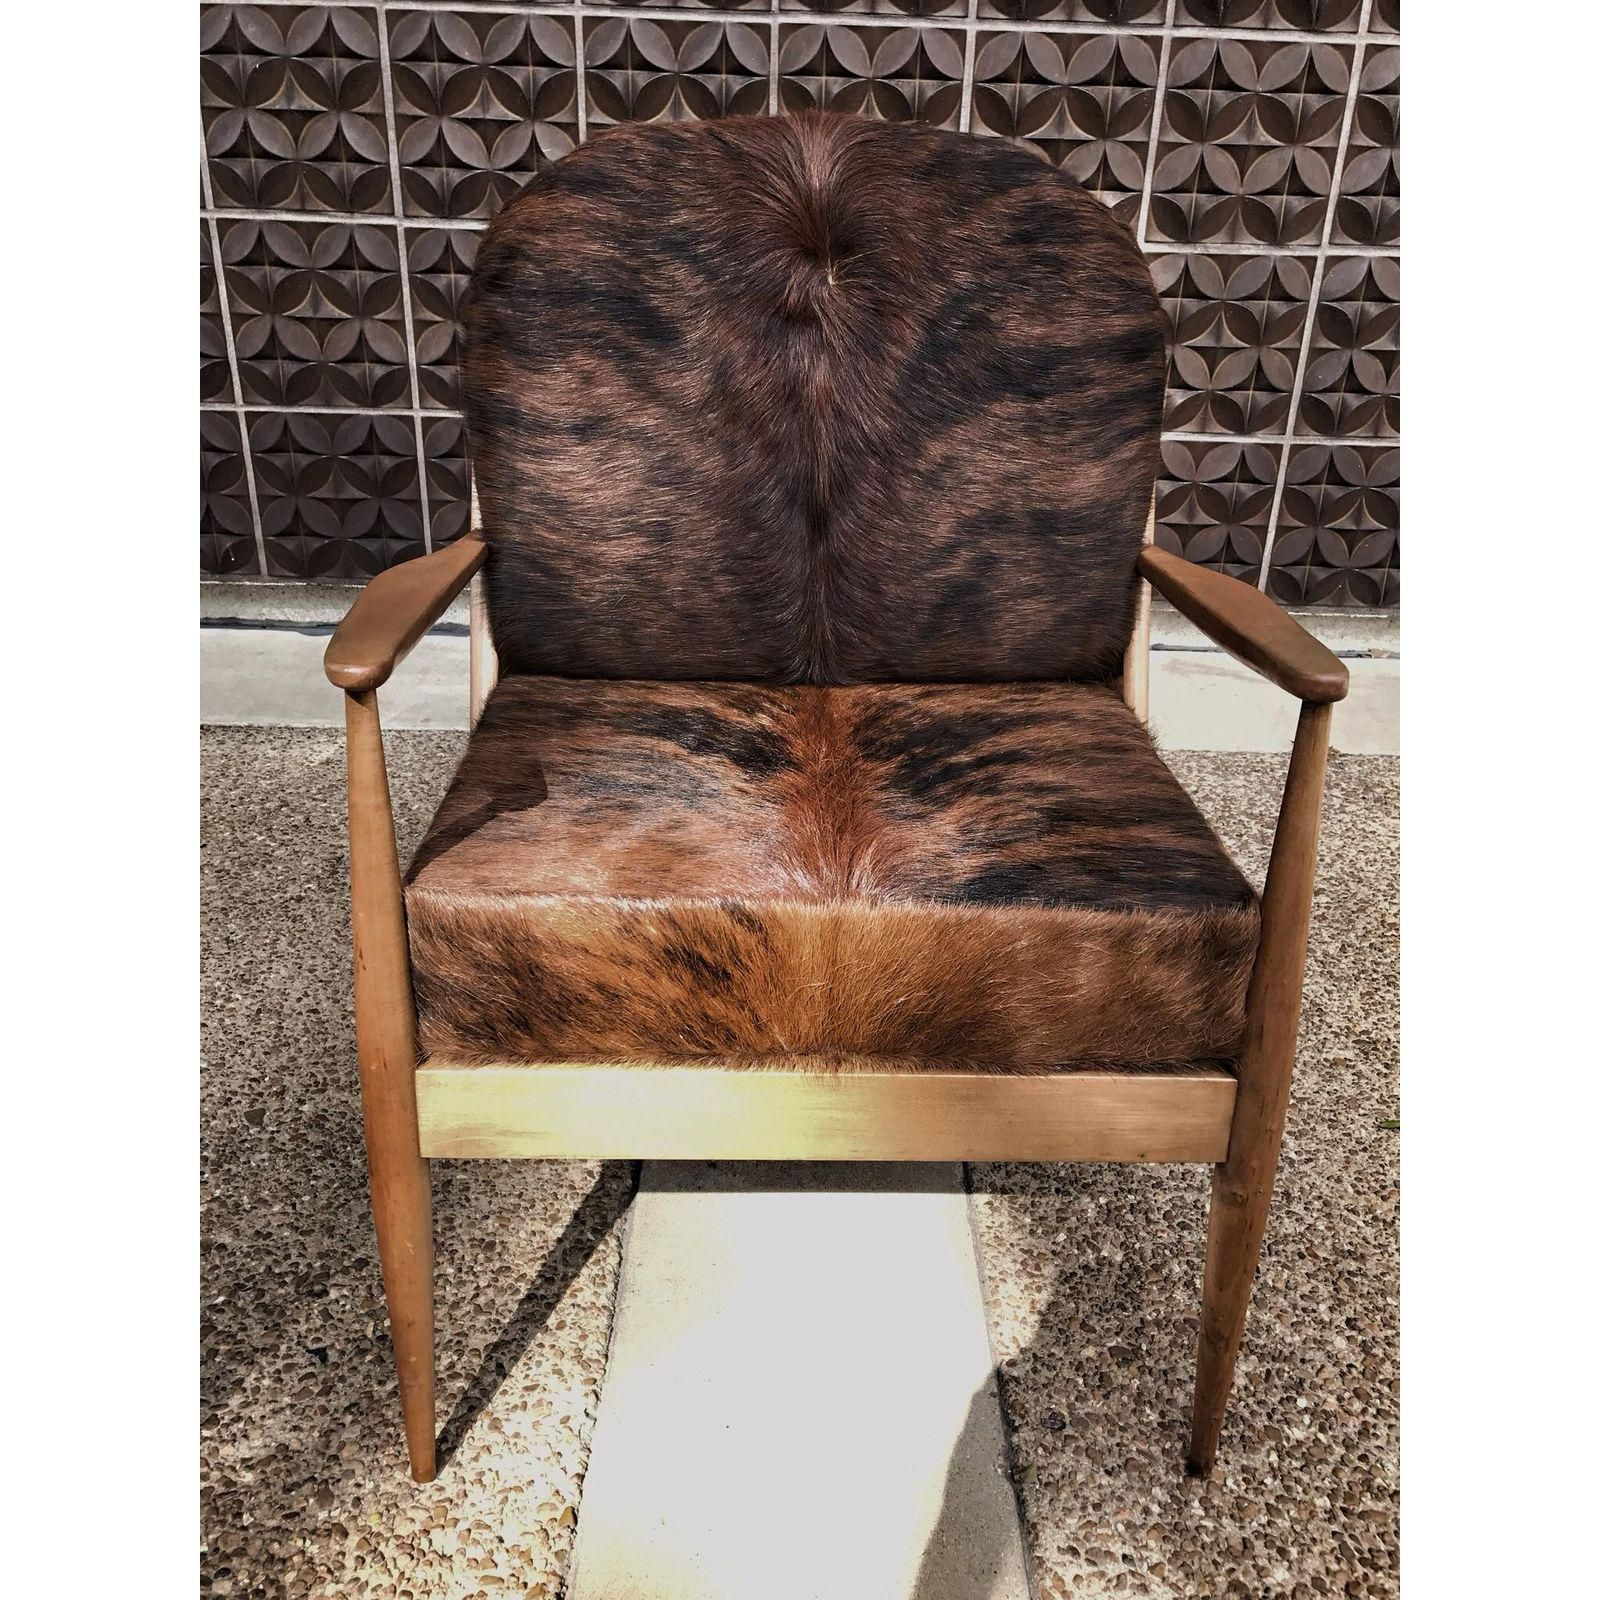 Awe Inspiring Danish Mid Century Modern Cowhide Chair Dragonfly Family Evergreenethics Interior Chair Design Evergreenethicsorg